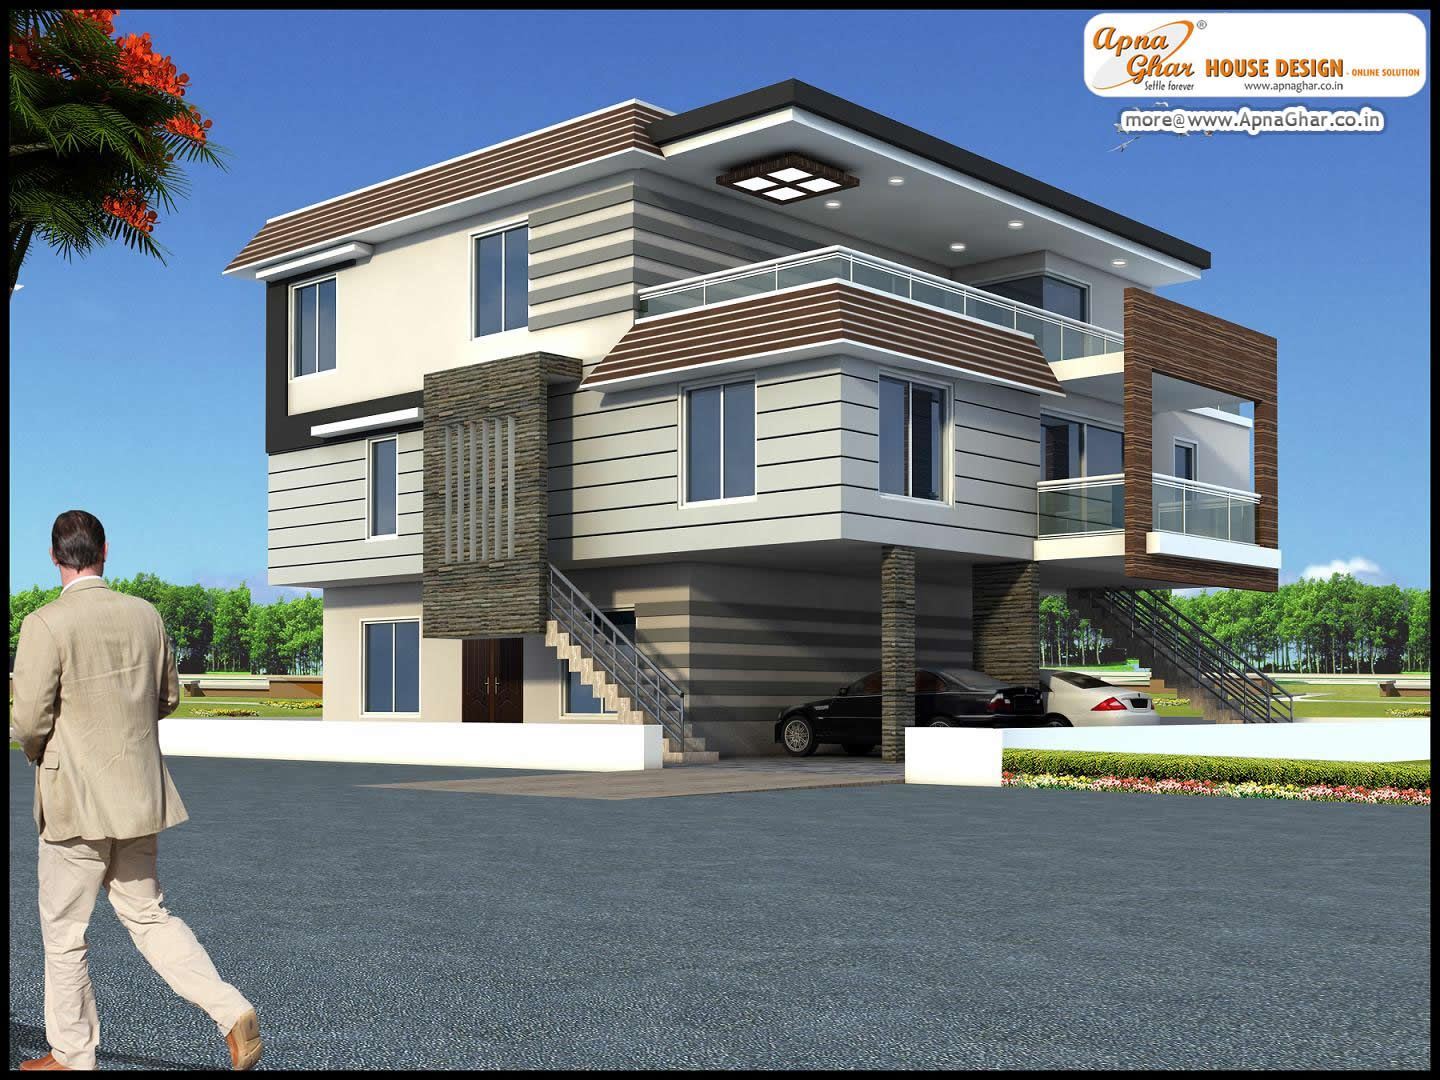 5 bedroom modern triplex 3 floor house design area 140 sq